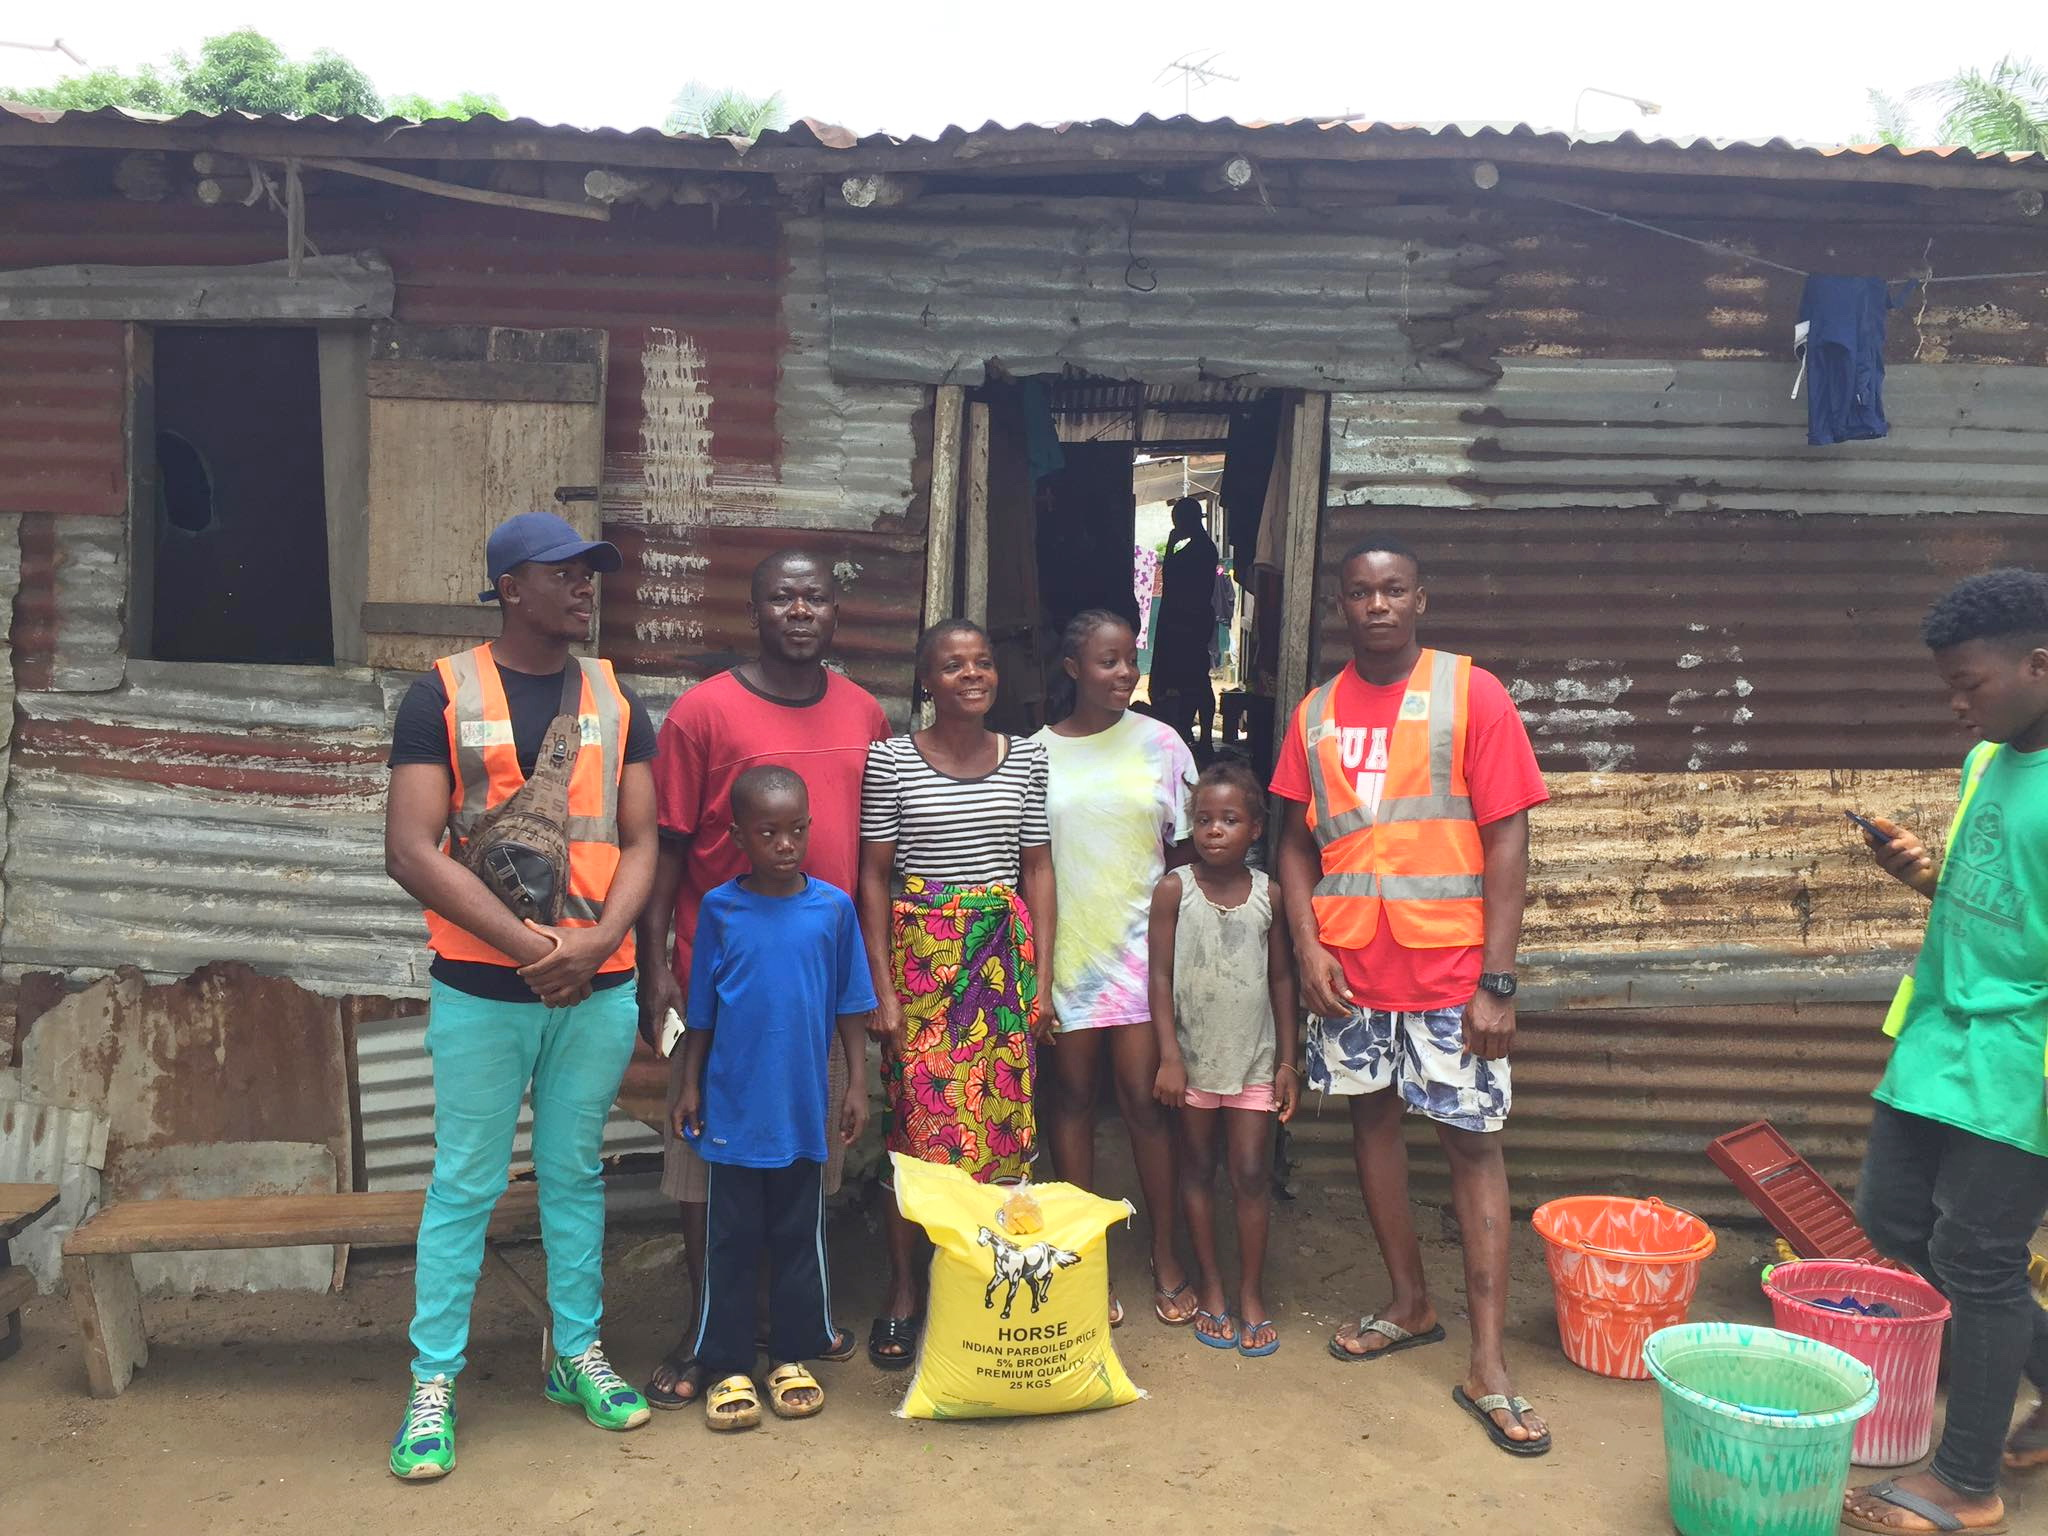 Daniel Keamue with our volunteers distributing rice to a needy family in the slums near Matadi.